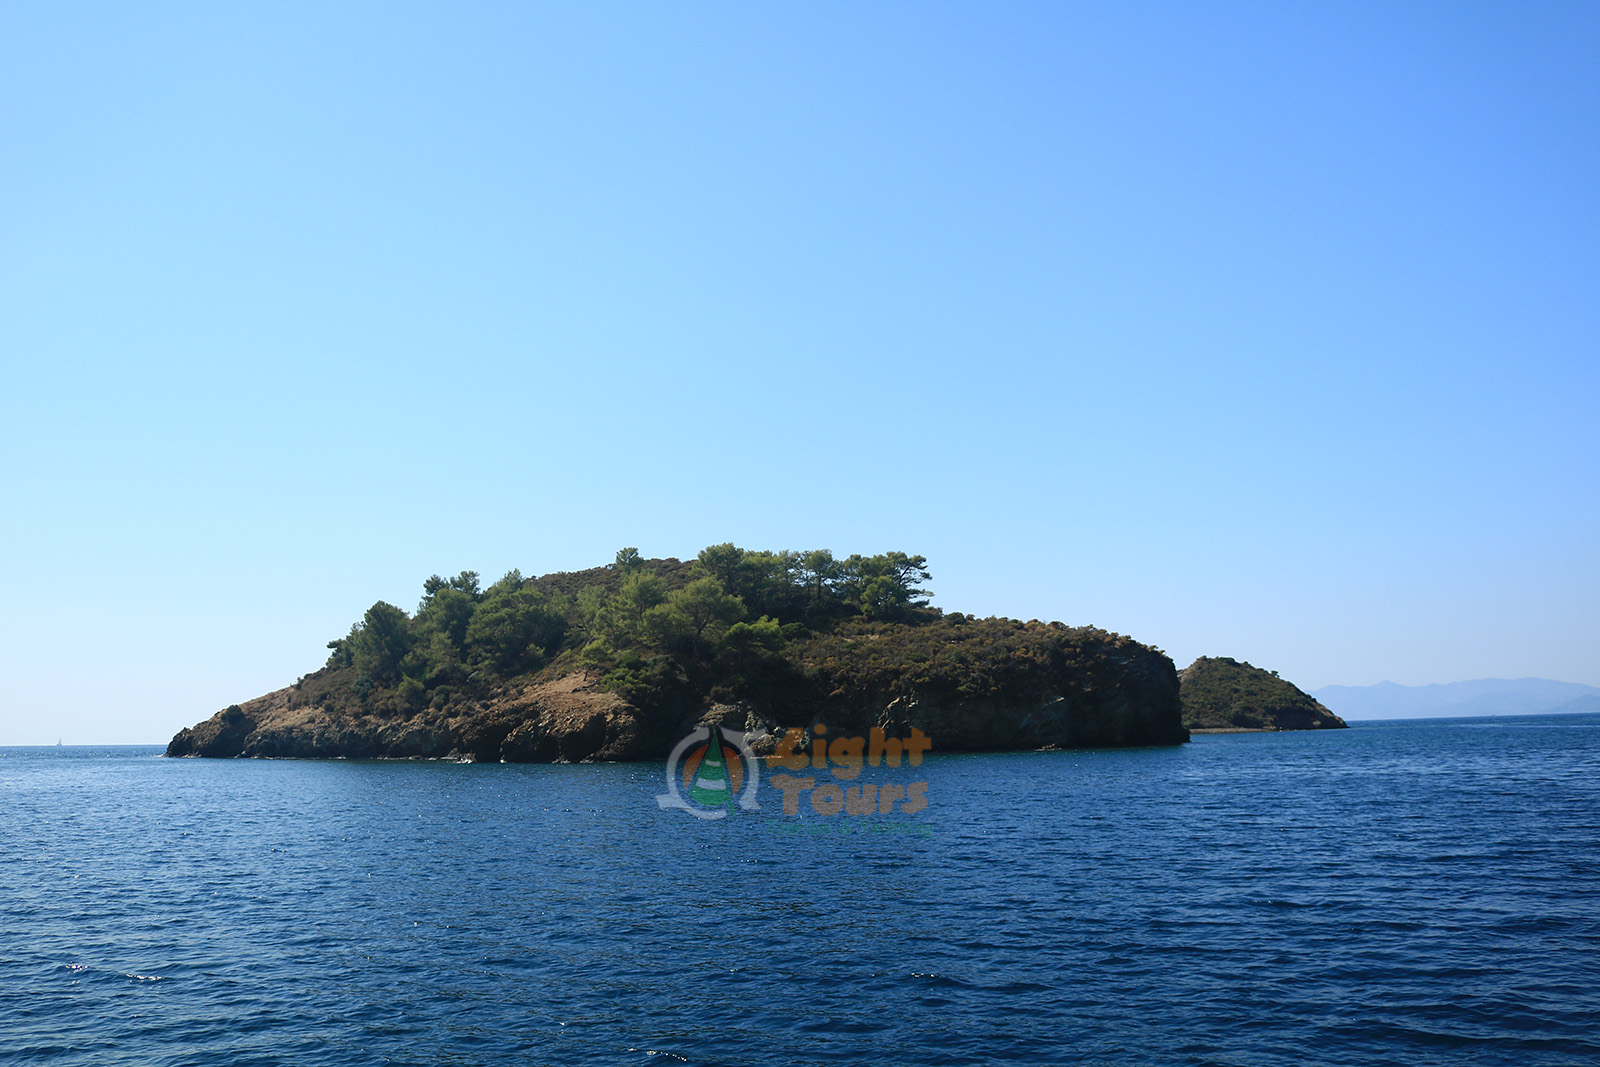 12 Islands Sailing Boat Trip, fethiye boat tour, light tours day tours,Light Tours Daily Tours, Discount Tours, Package Tours 400